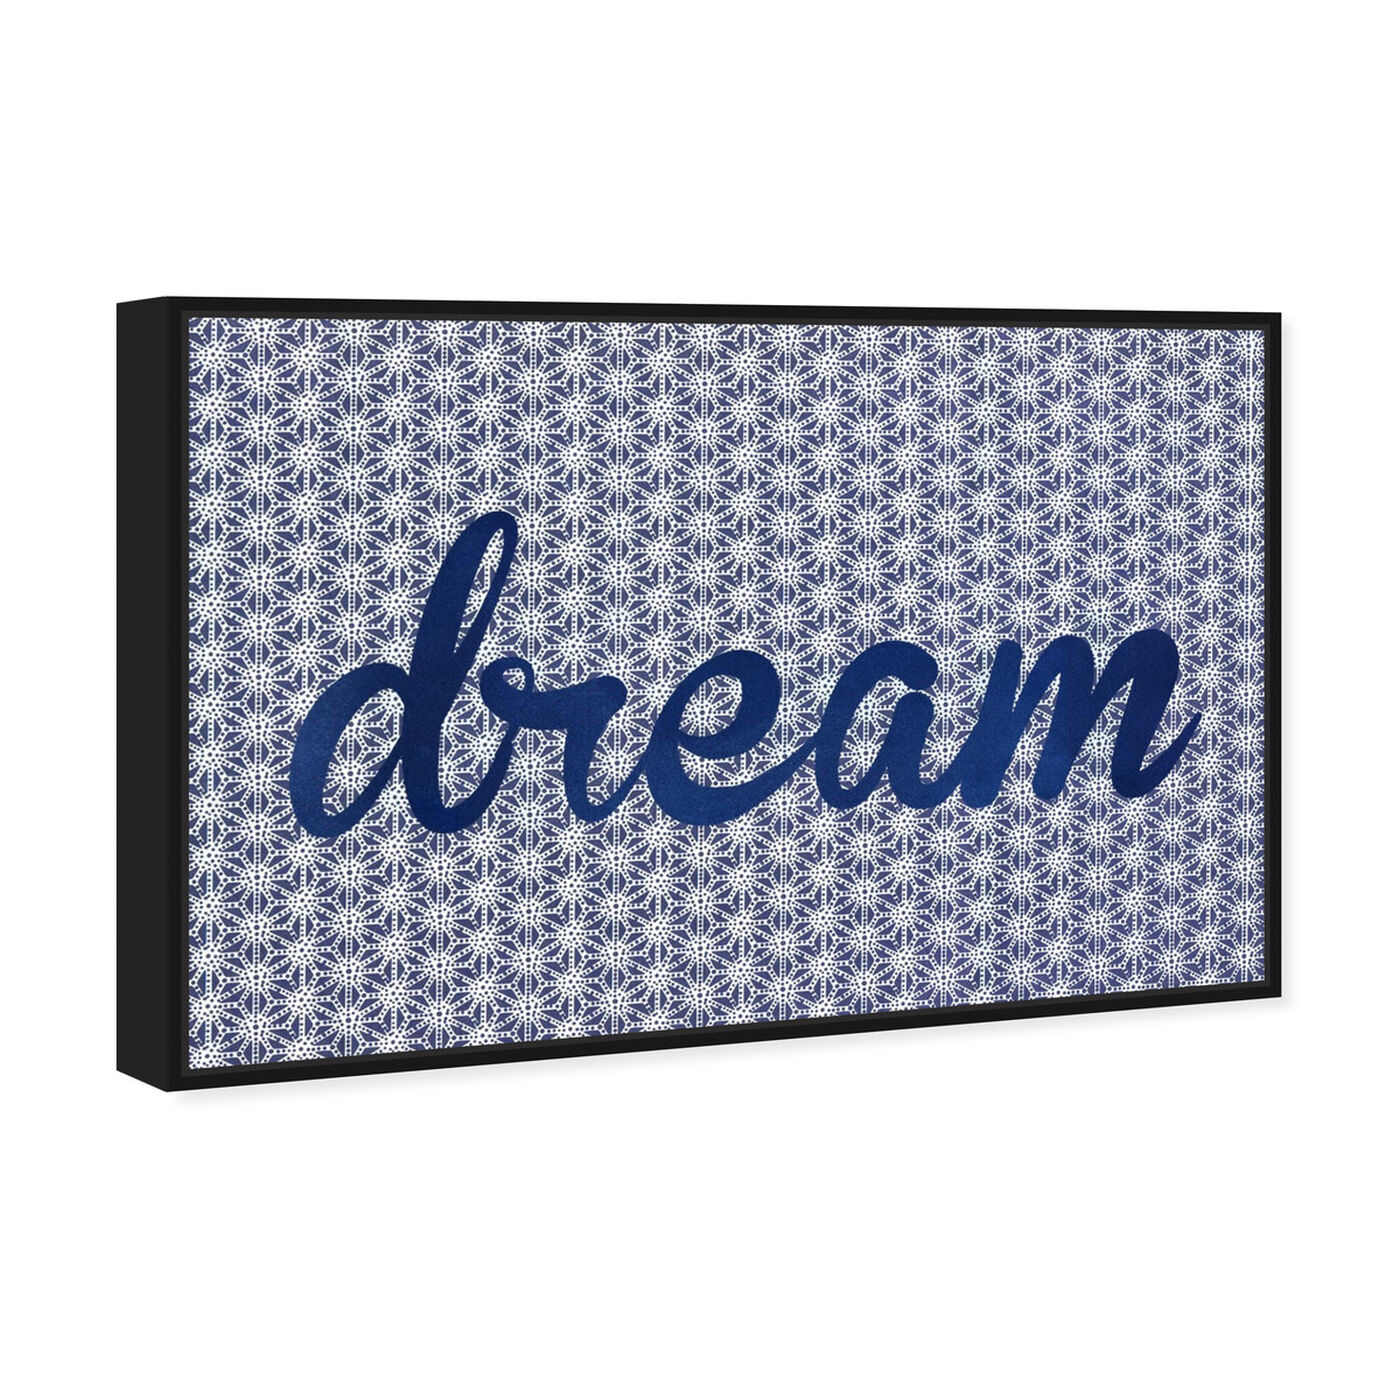 Angled view of Dream Dream Dream featuring typography and quotes and motivational quotes and sayings art.